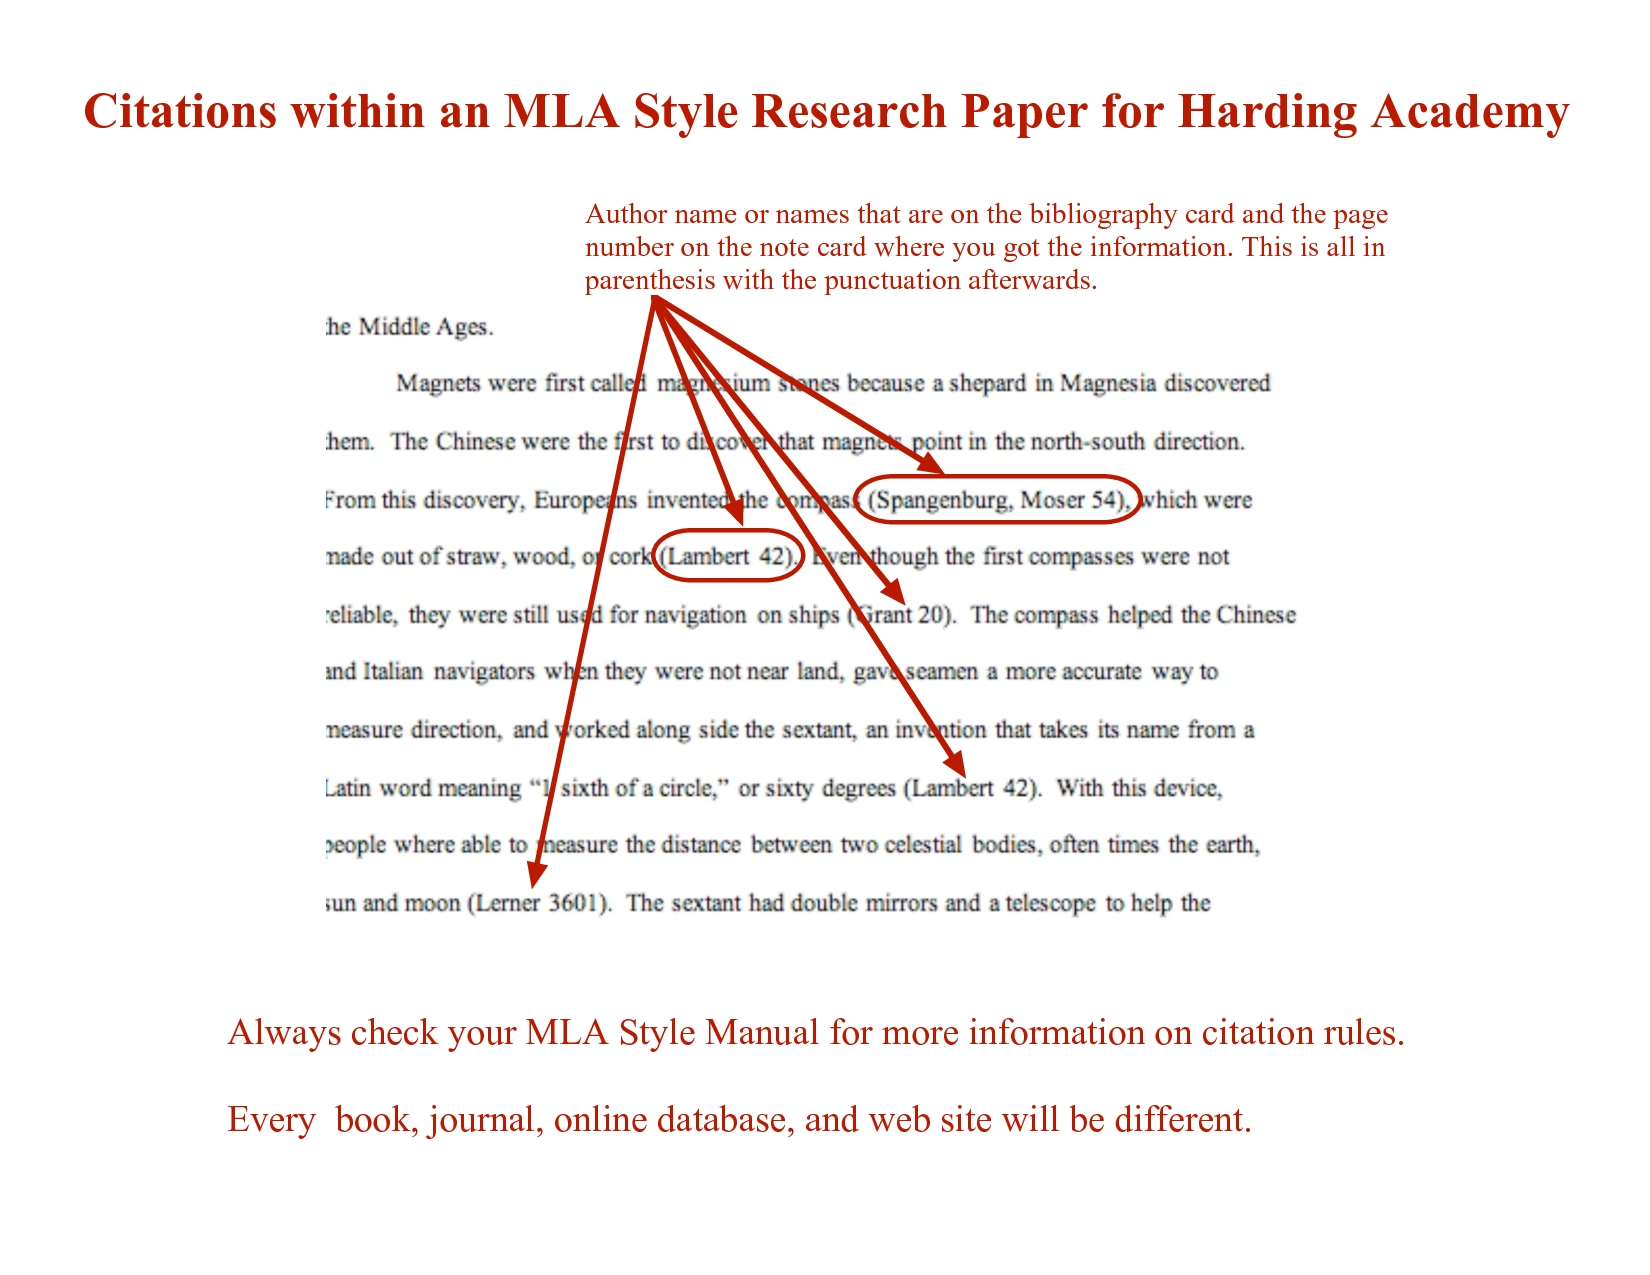 008 How To Cite Sources In Essay Citation Mla Twenty Hueandi Co Collection Of Solutions Quote From Website Stunning Research Pape Examples Essays Apa Example Striking An A Textbook Format Book Style Full